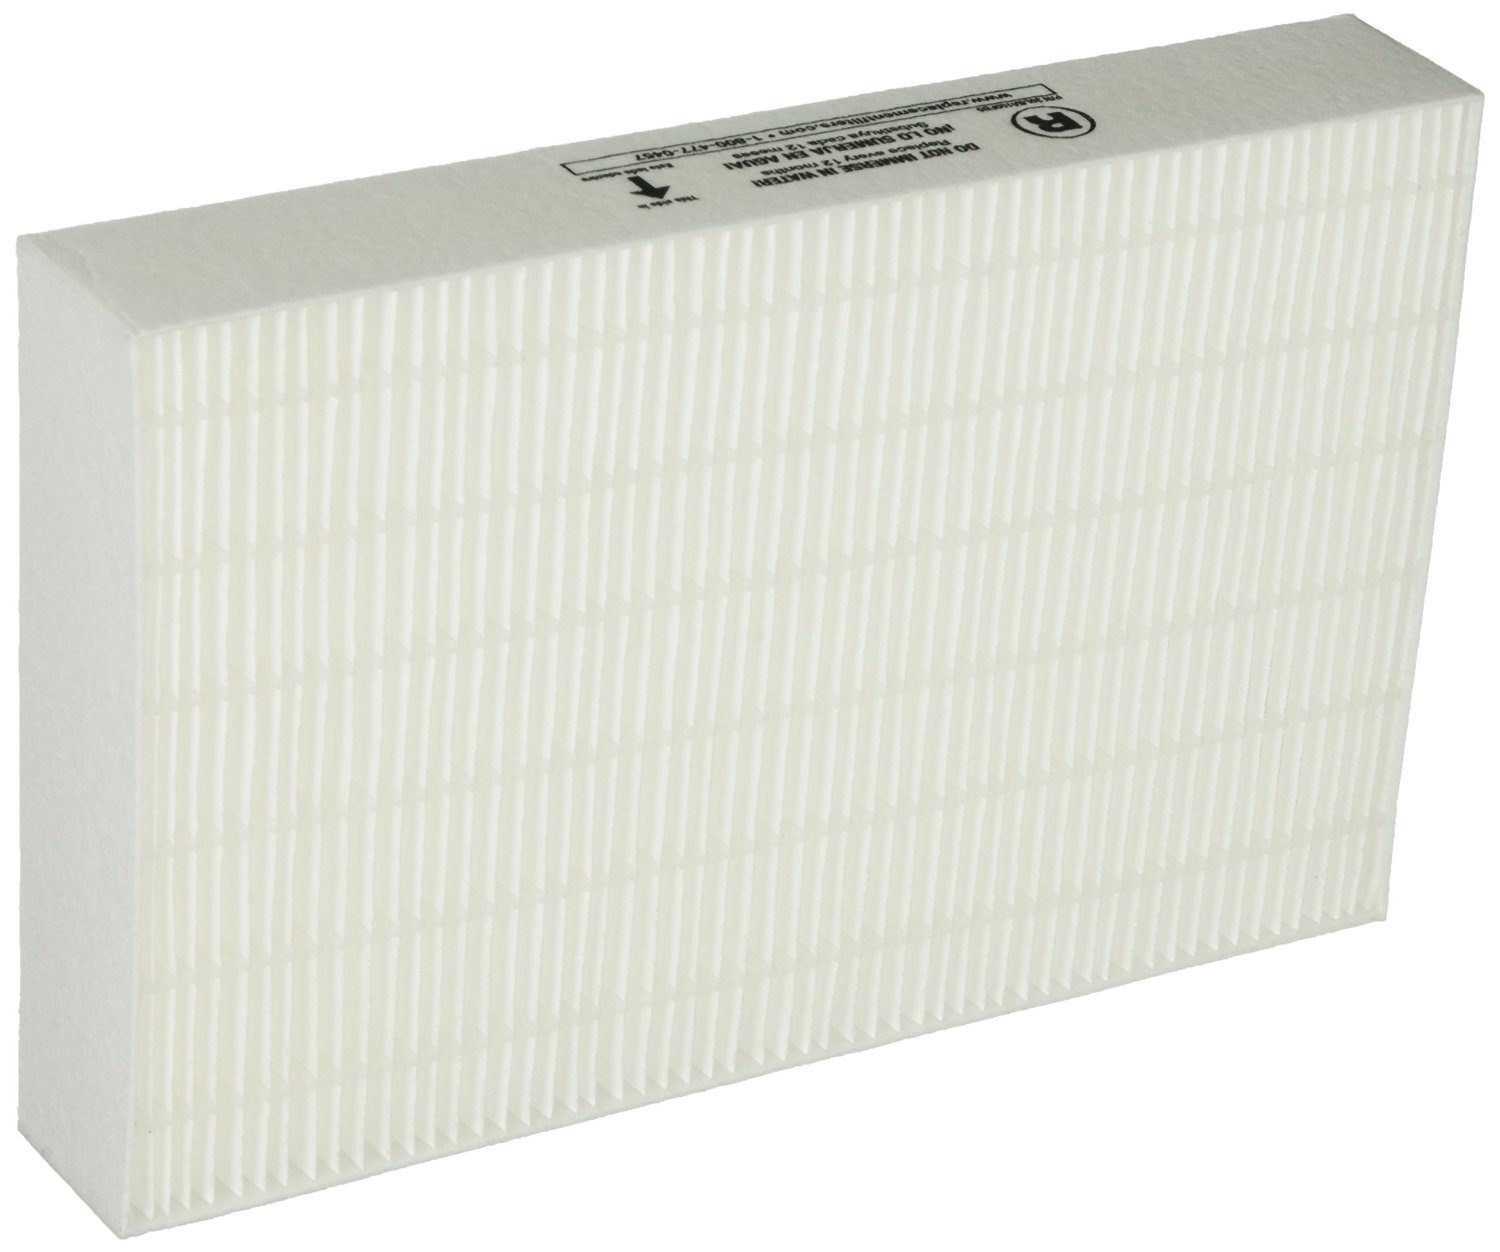 Aftermarket Honeywell Filter R True HEPA Replacement Filter - 3 Pack, HRF-R3 By